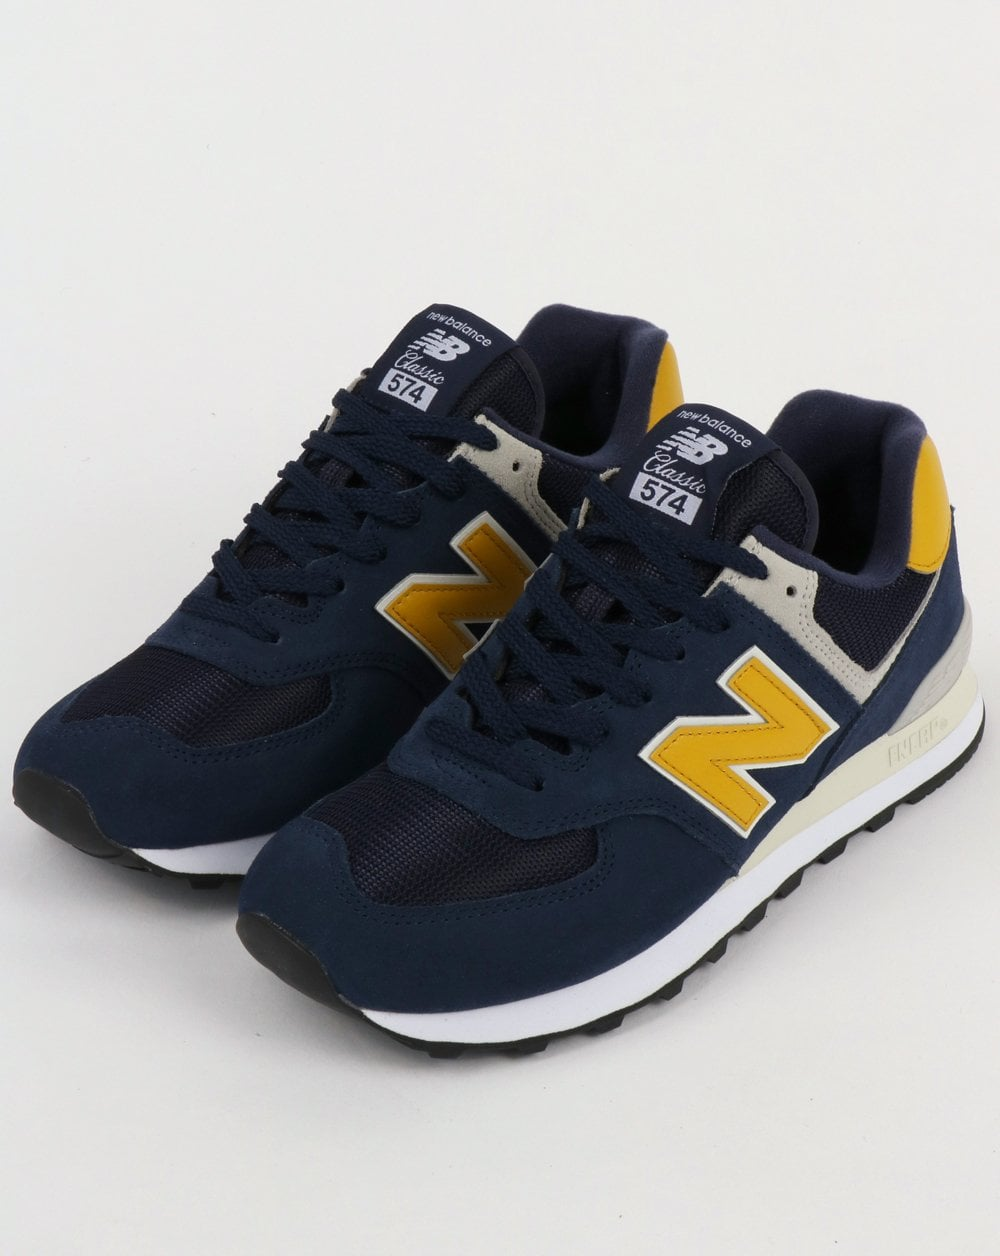 best sneakers f6630 a6e79 New Balance 574 Trainers Navy/Yellow